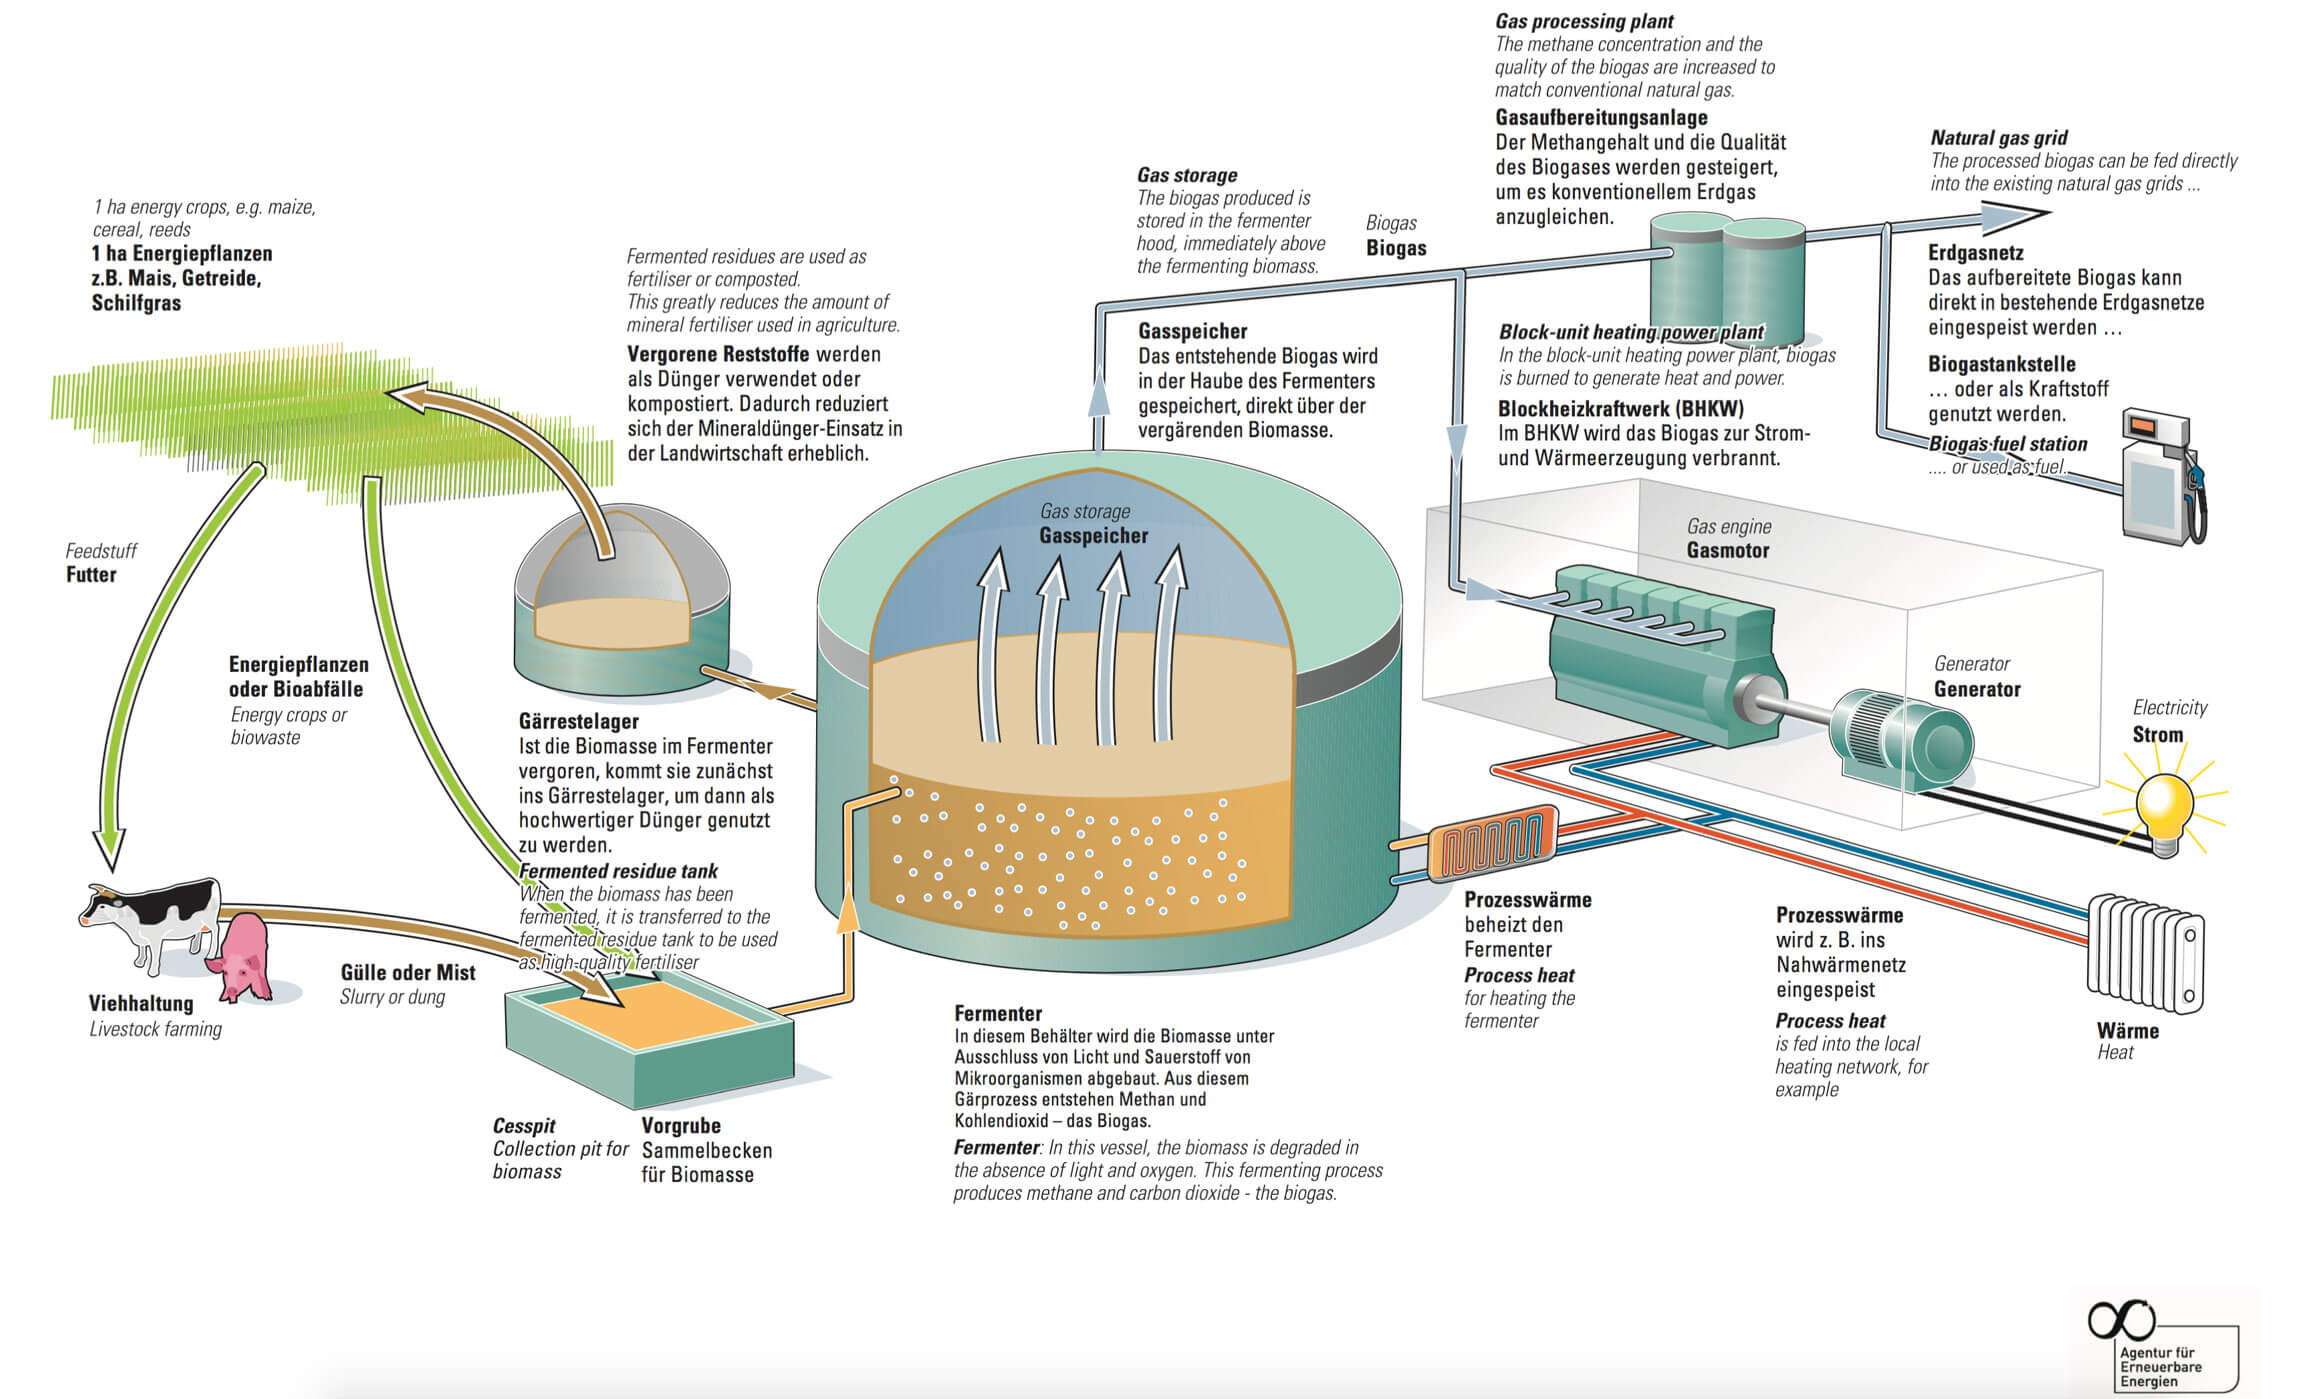 How Can Natural Gas Be Used To Produce Energy